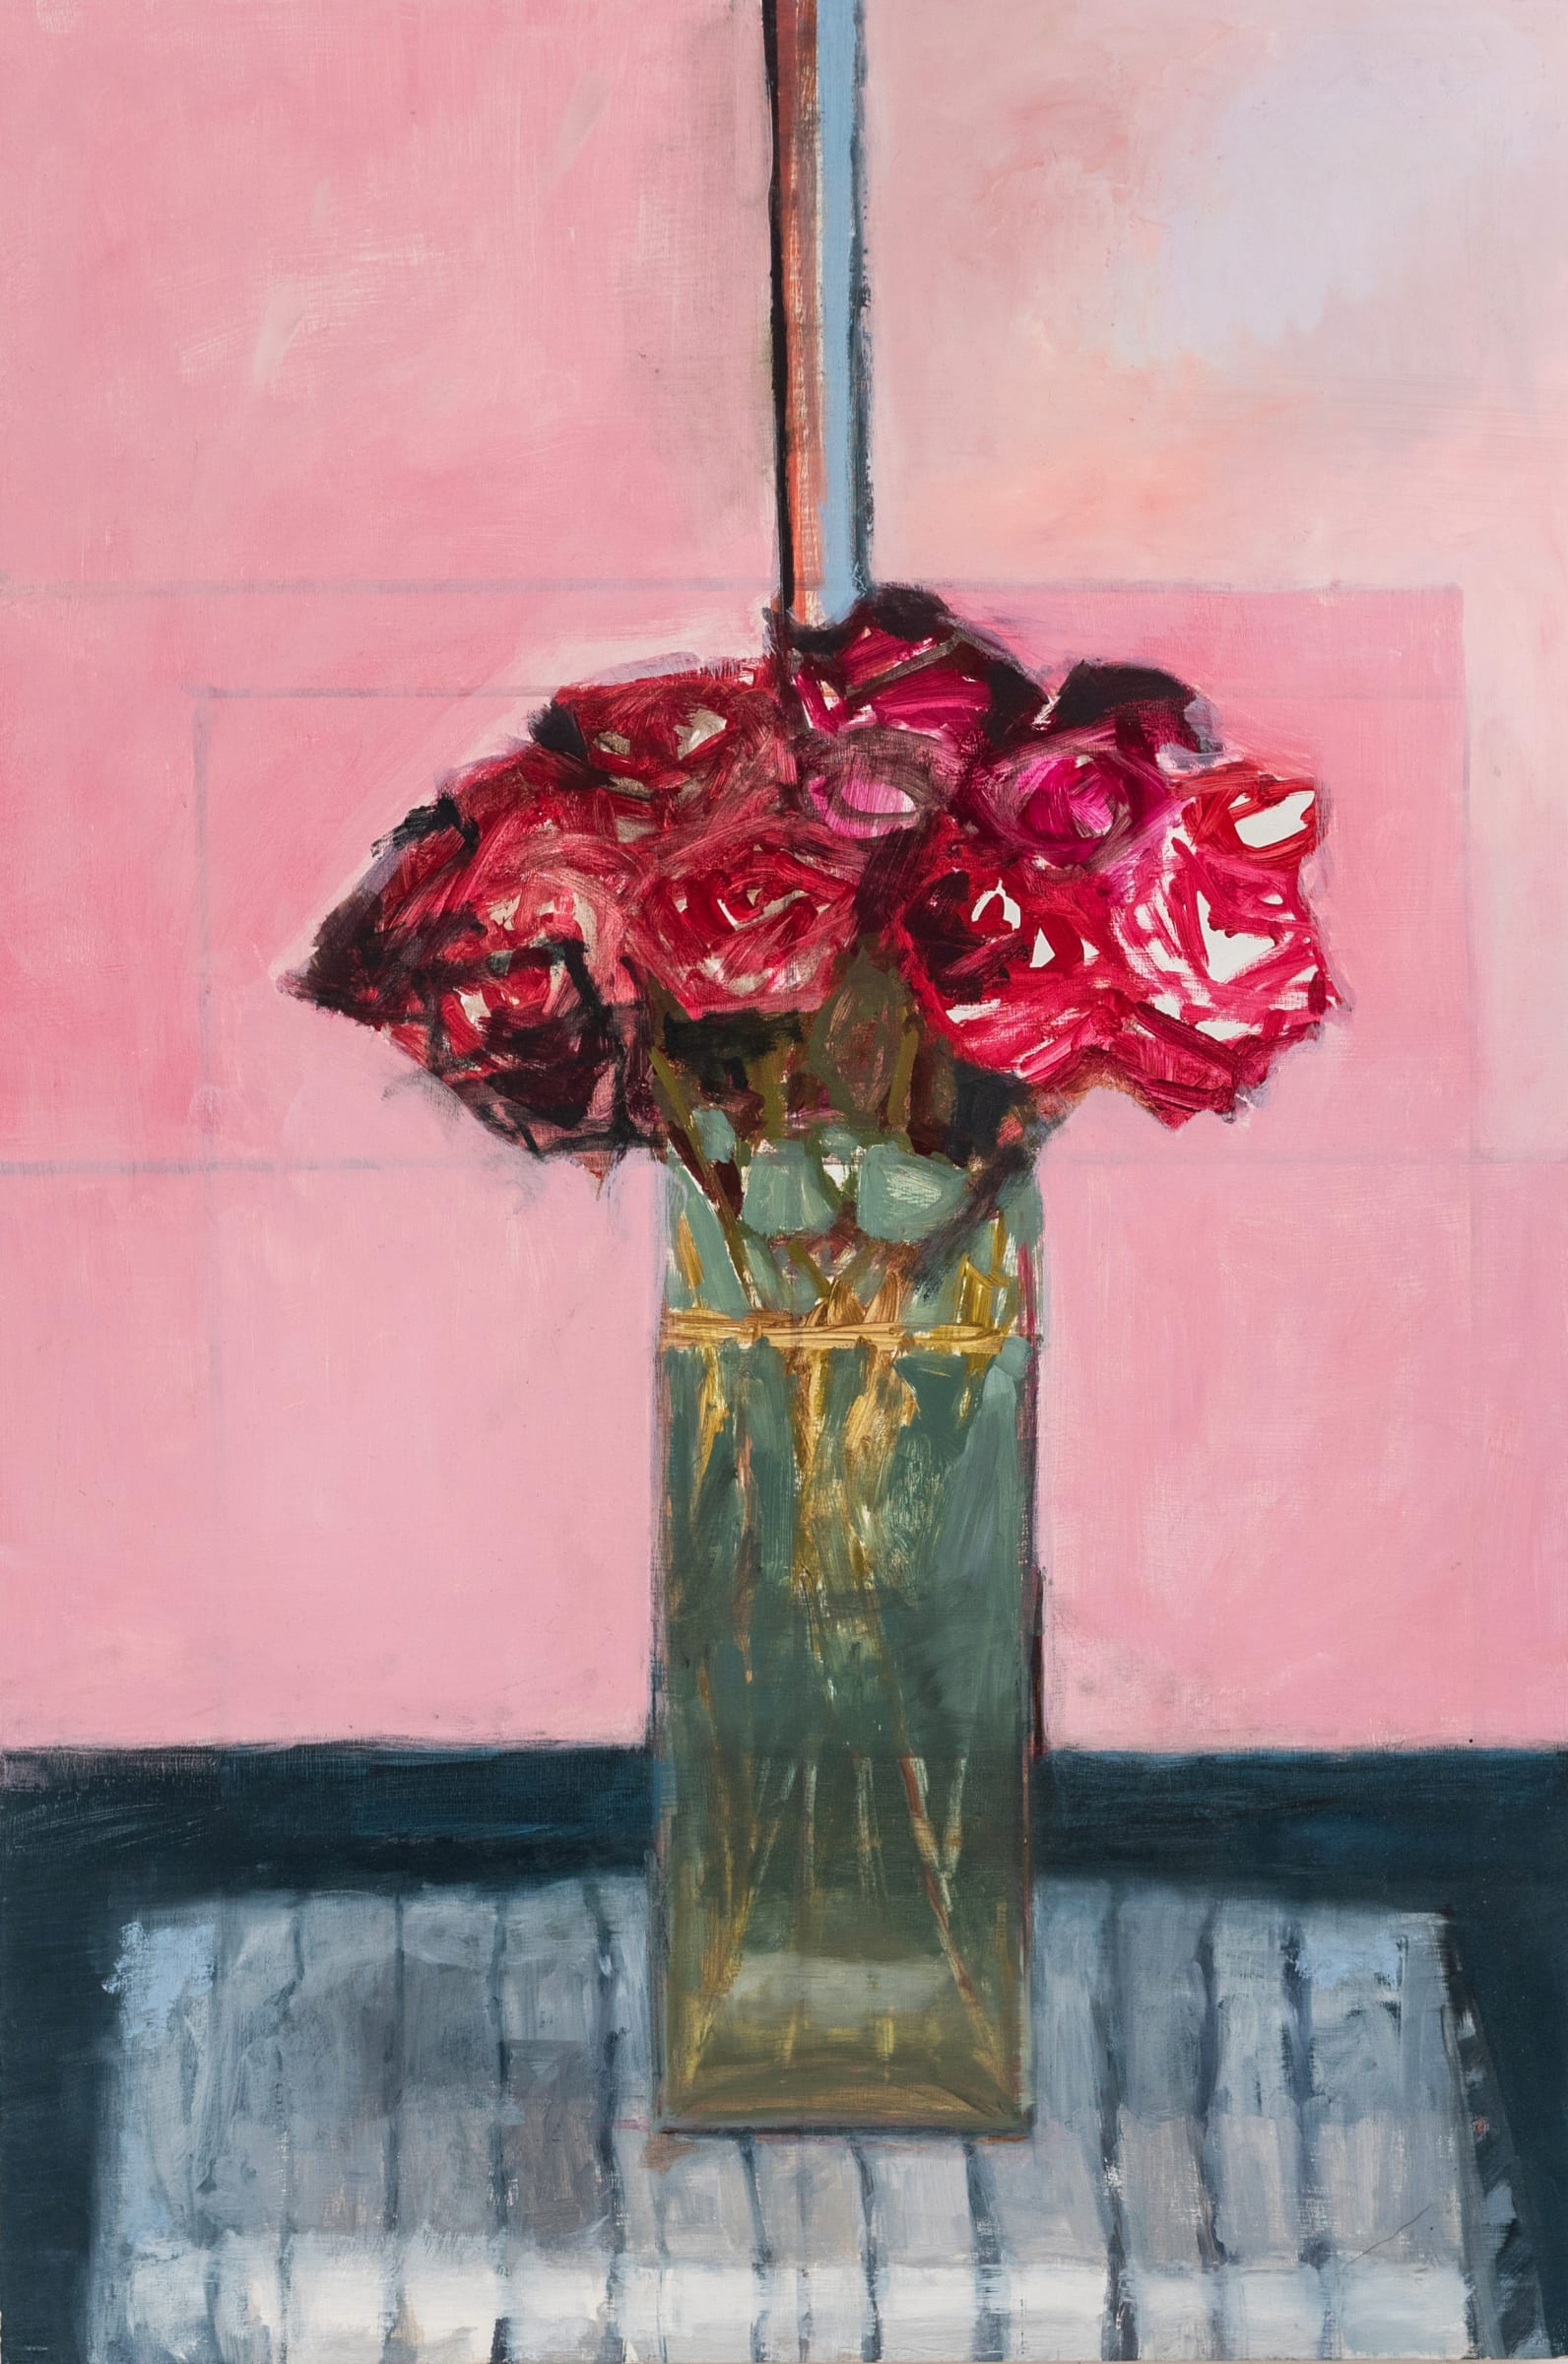 """<span class=""""link fancybox-details-link""""><a href=""""/artists/56-hadas-tal/works/727-hadas-tal-red-roses/"""">View Detail Page</a></span>Hadas Tal   Red Roses   Oil on Wood Panel   30 x 20 inches"""